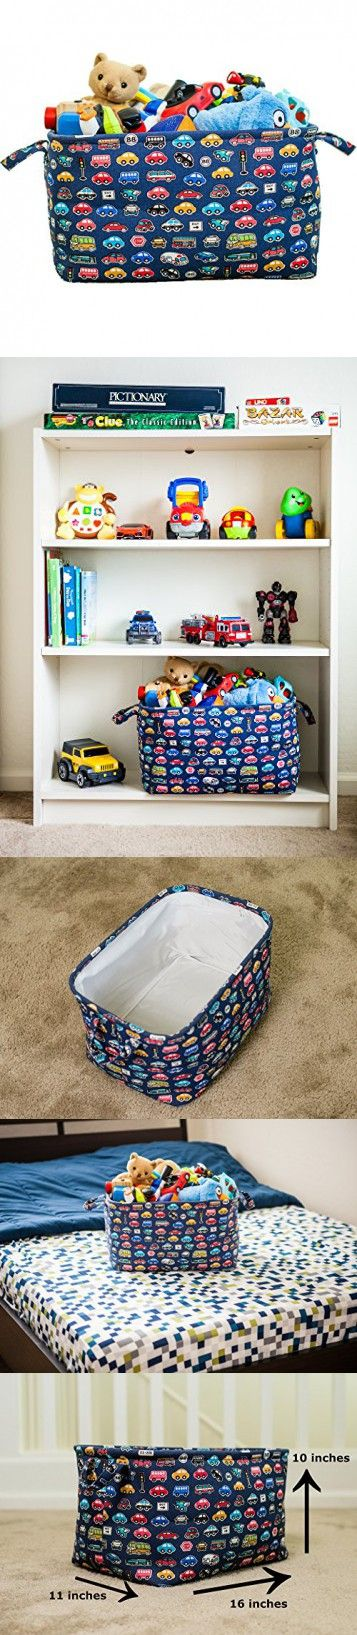 Toy Chest Storage Basket for Kids, Nursery Storage Bin for Baby, Closet and Laundry Organizer and Gift Basket (Blue Car)